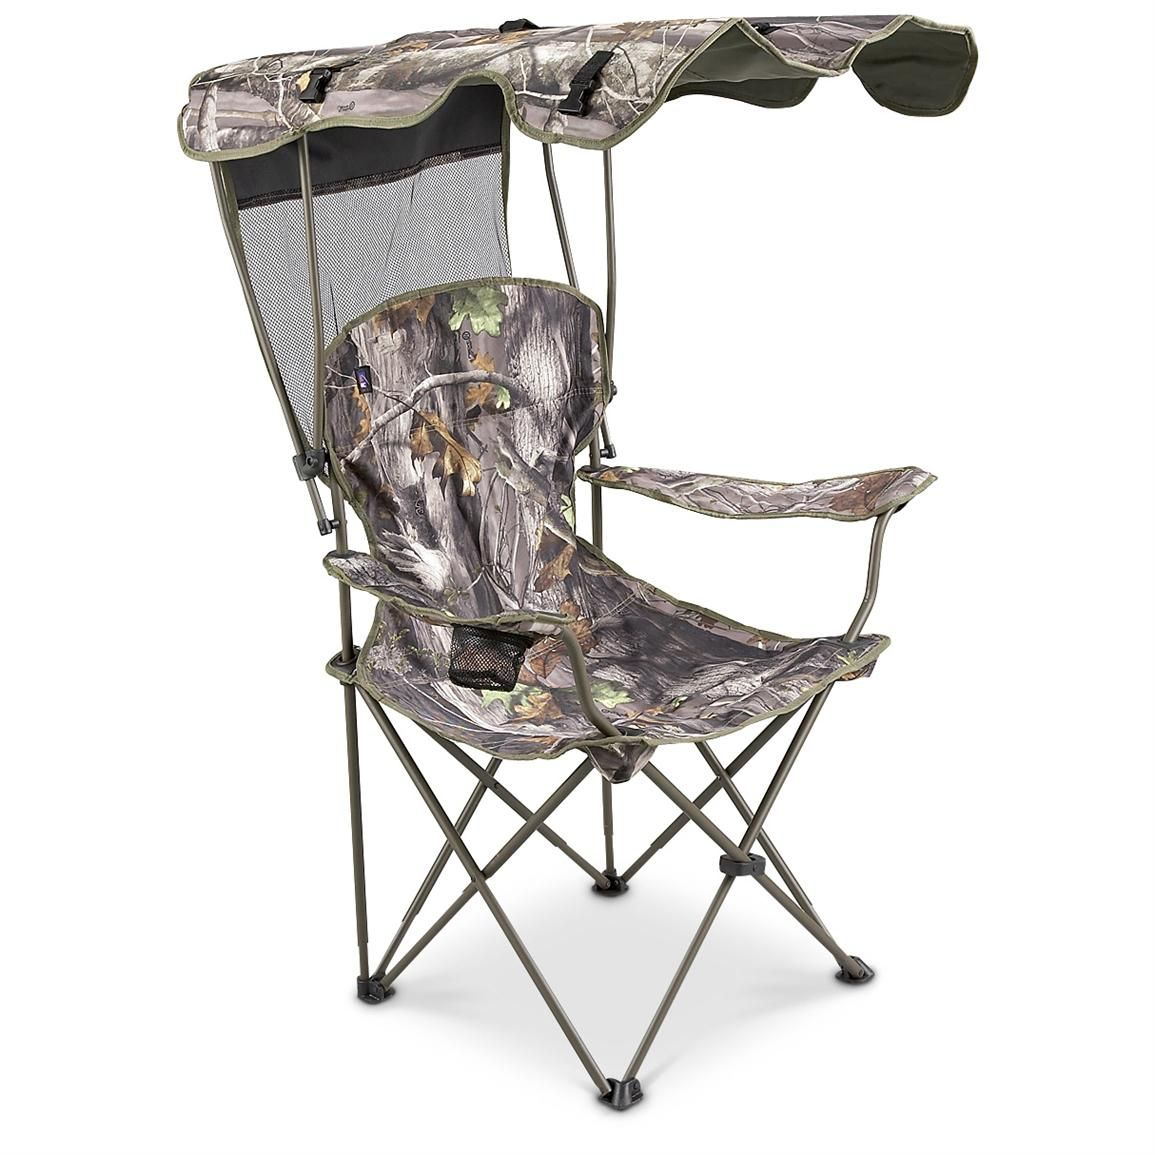 MAC(R) Canopy Chair, Realtree(R) Camo Canopy outdoor